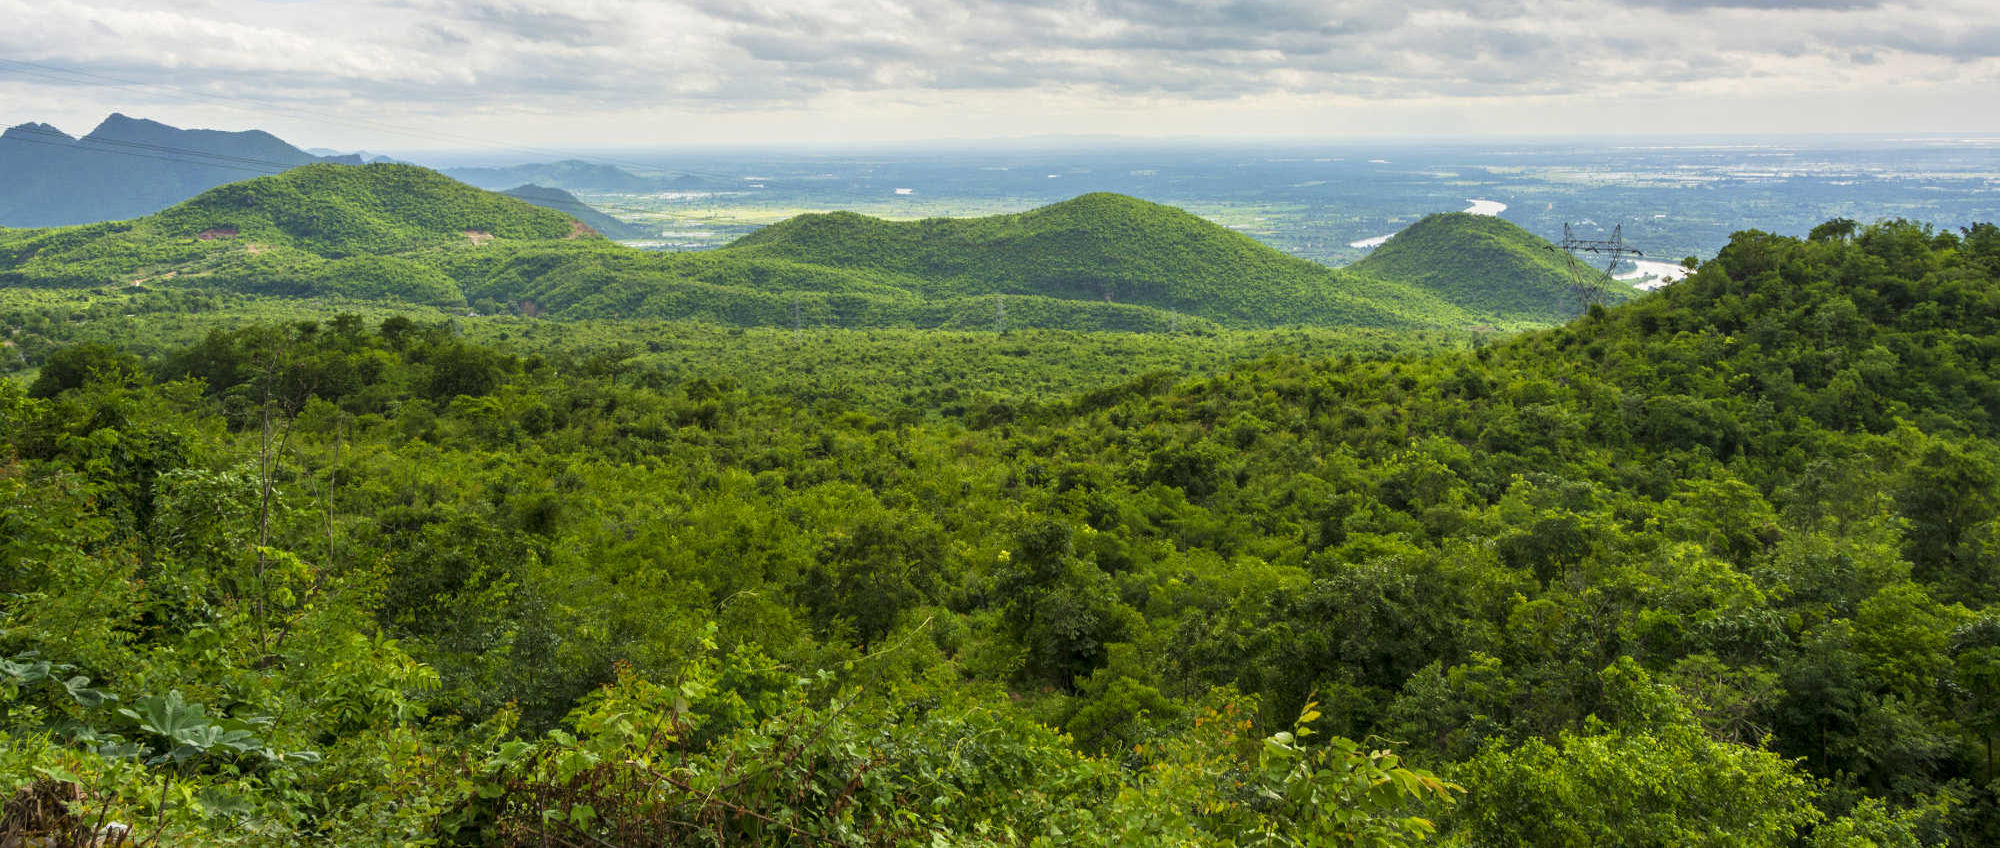 Forested hills in Myanmar